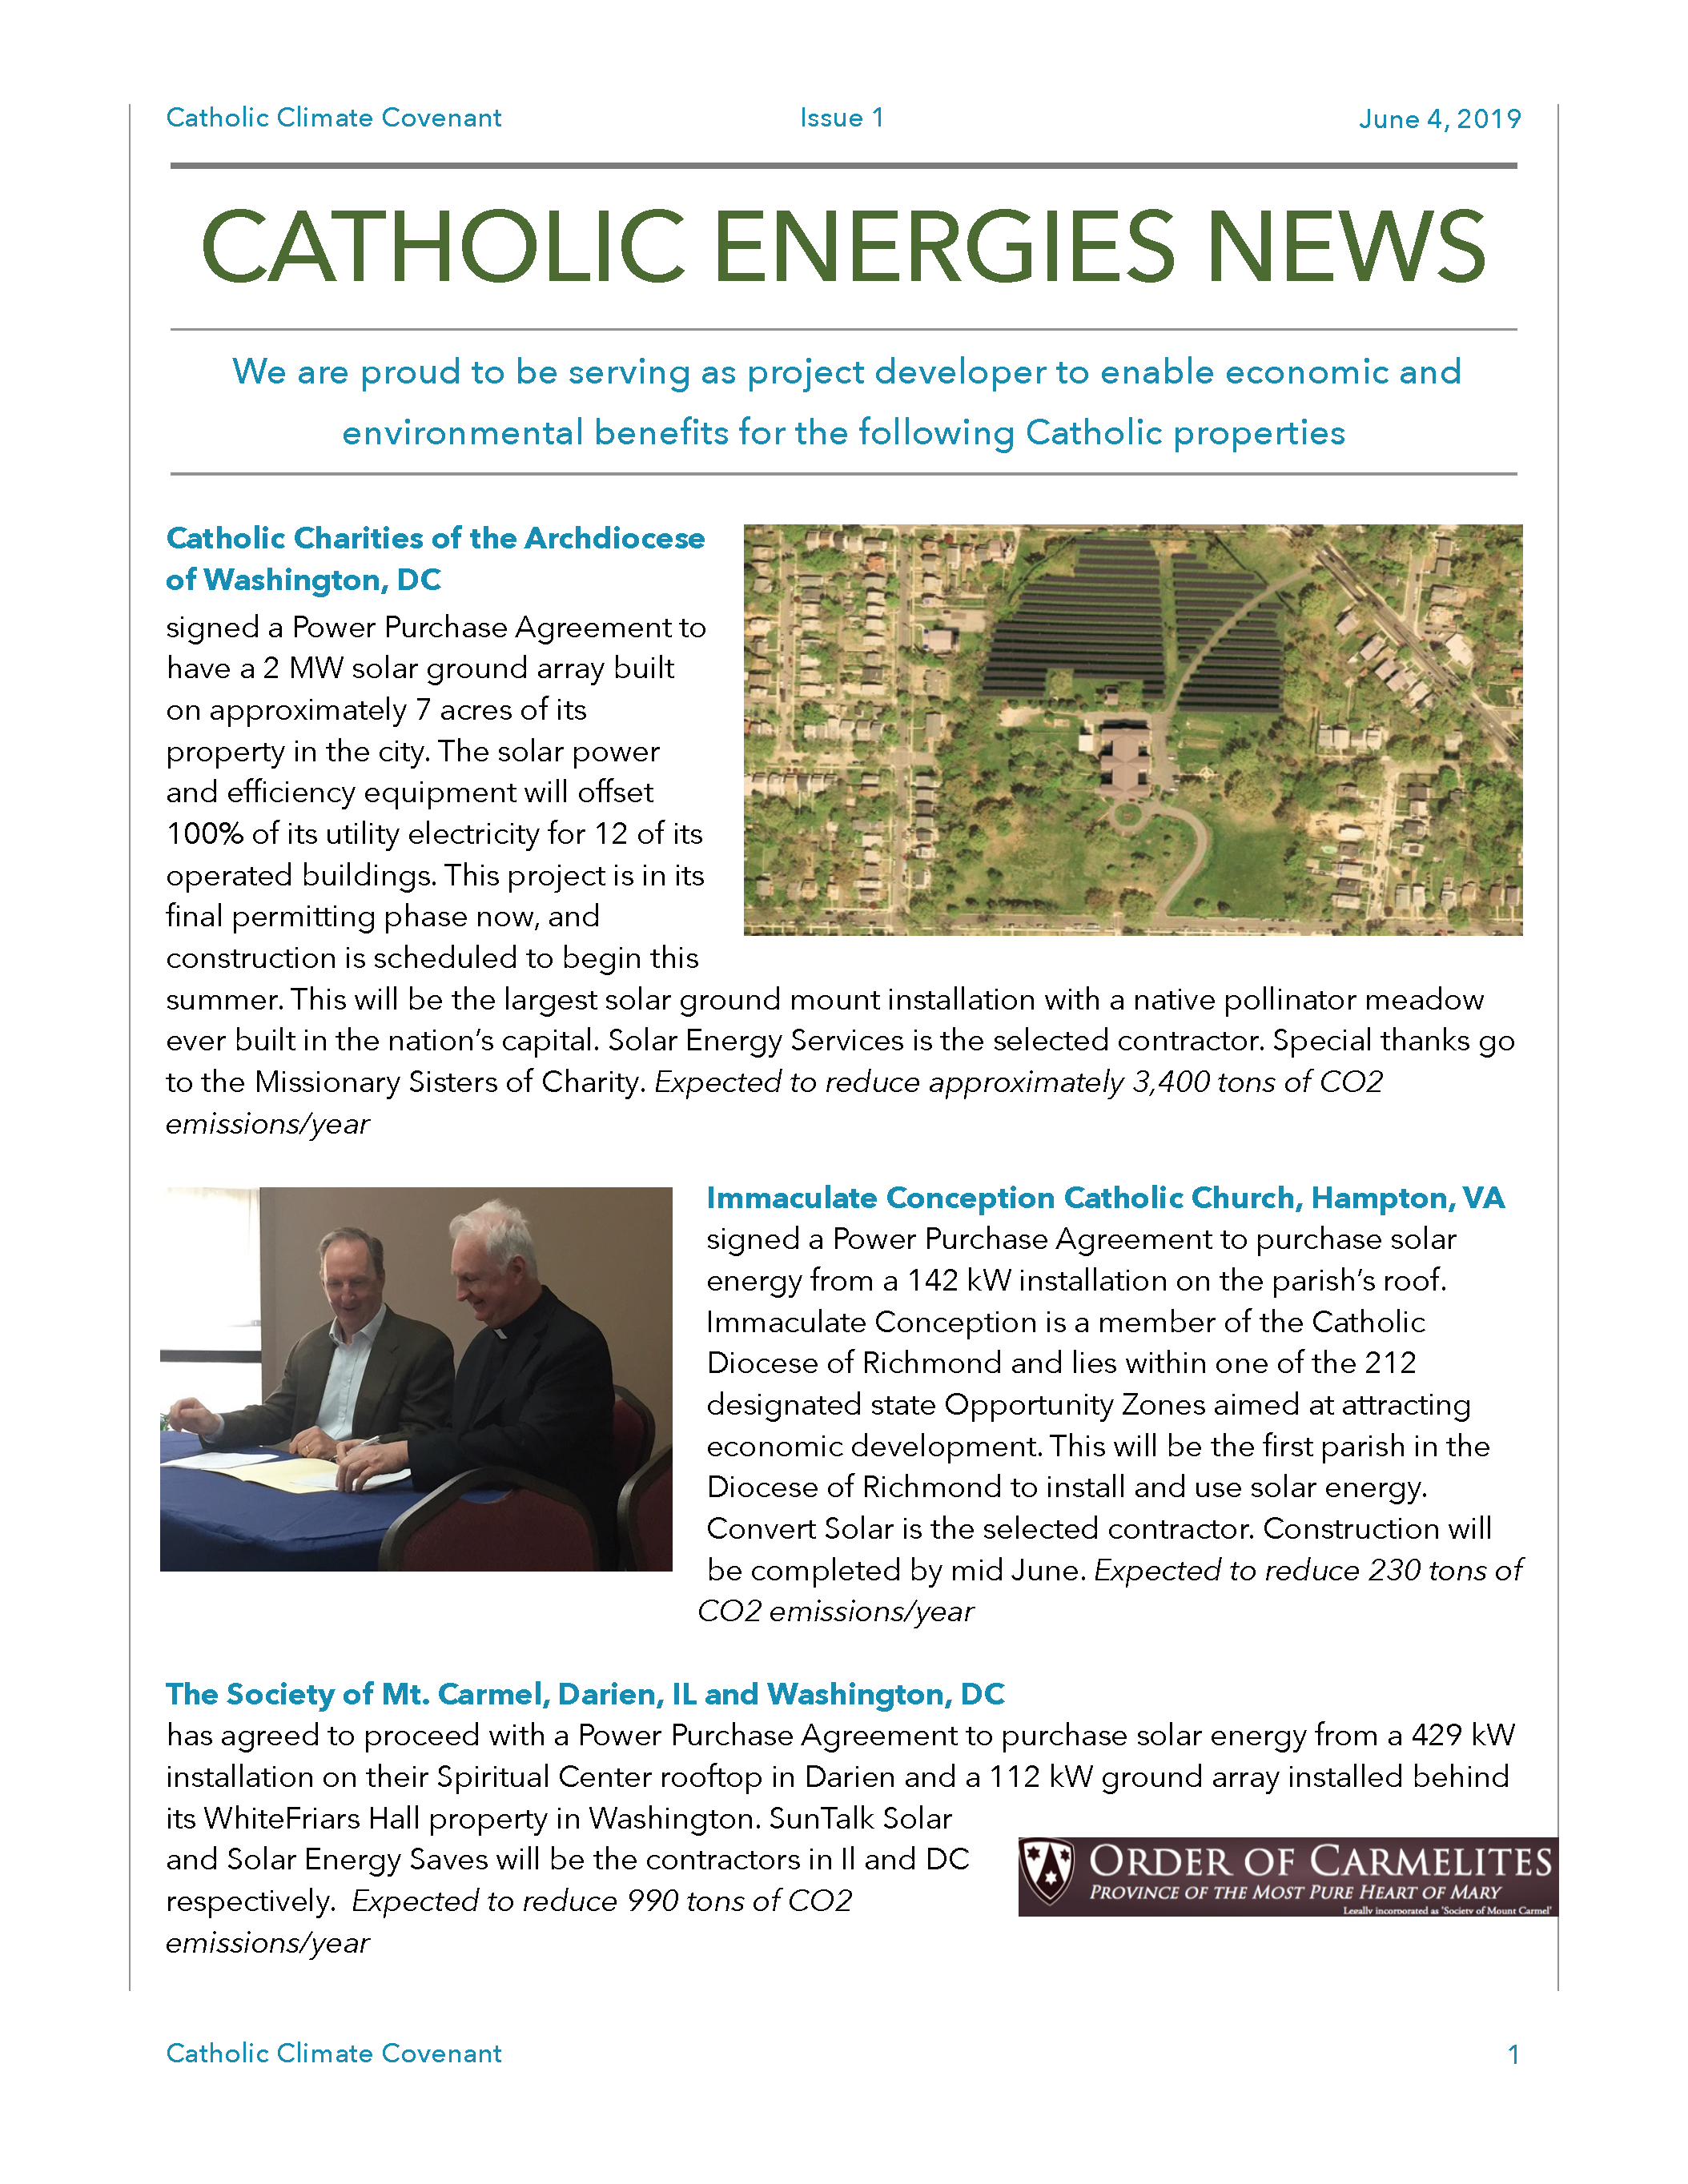 Catholic Energies New FINAL 20190604_Page_1.png